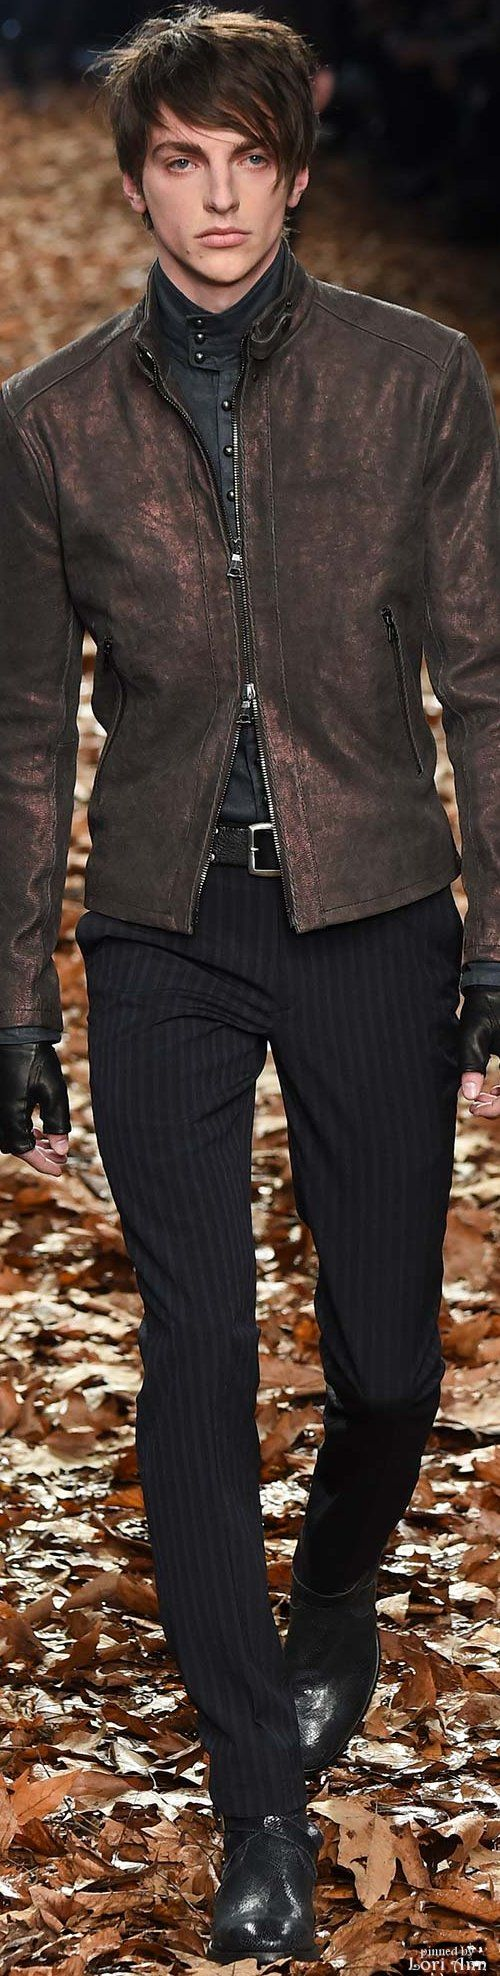 John Varvatos 2015 | Men's Fashion | Menswear | Men's Casual Outfit for Fall/Winter | Moda Masculina | Shop at designerclothingfans.com